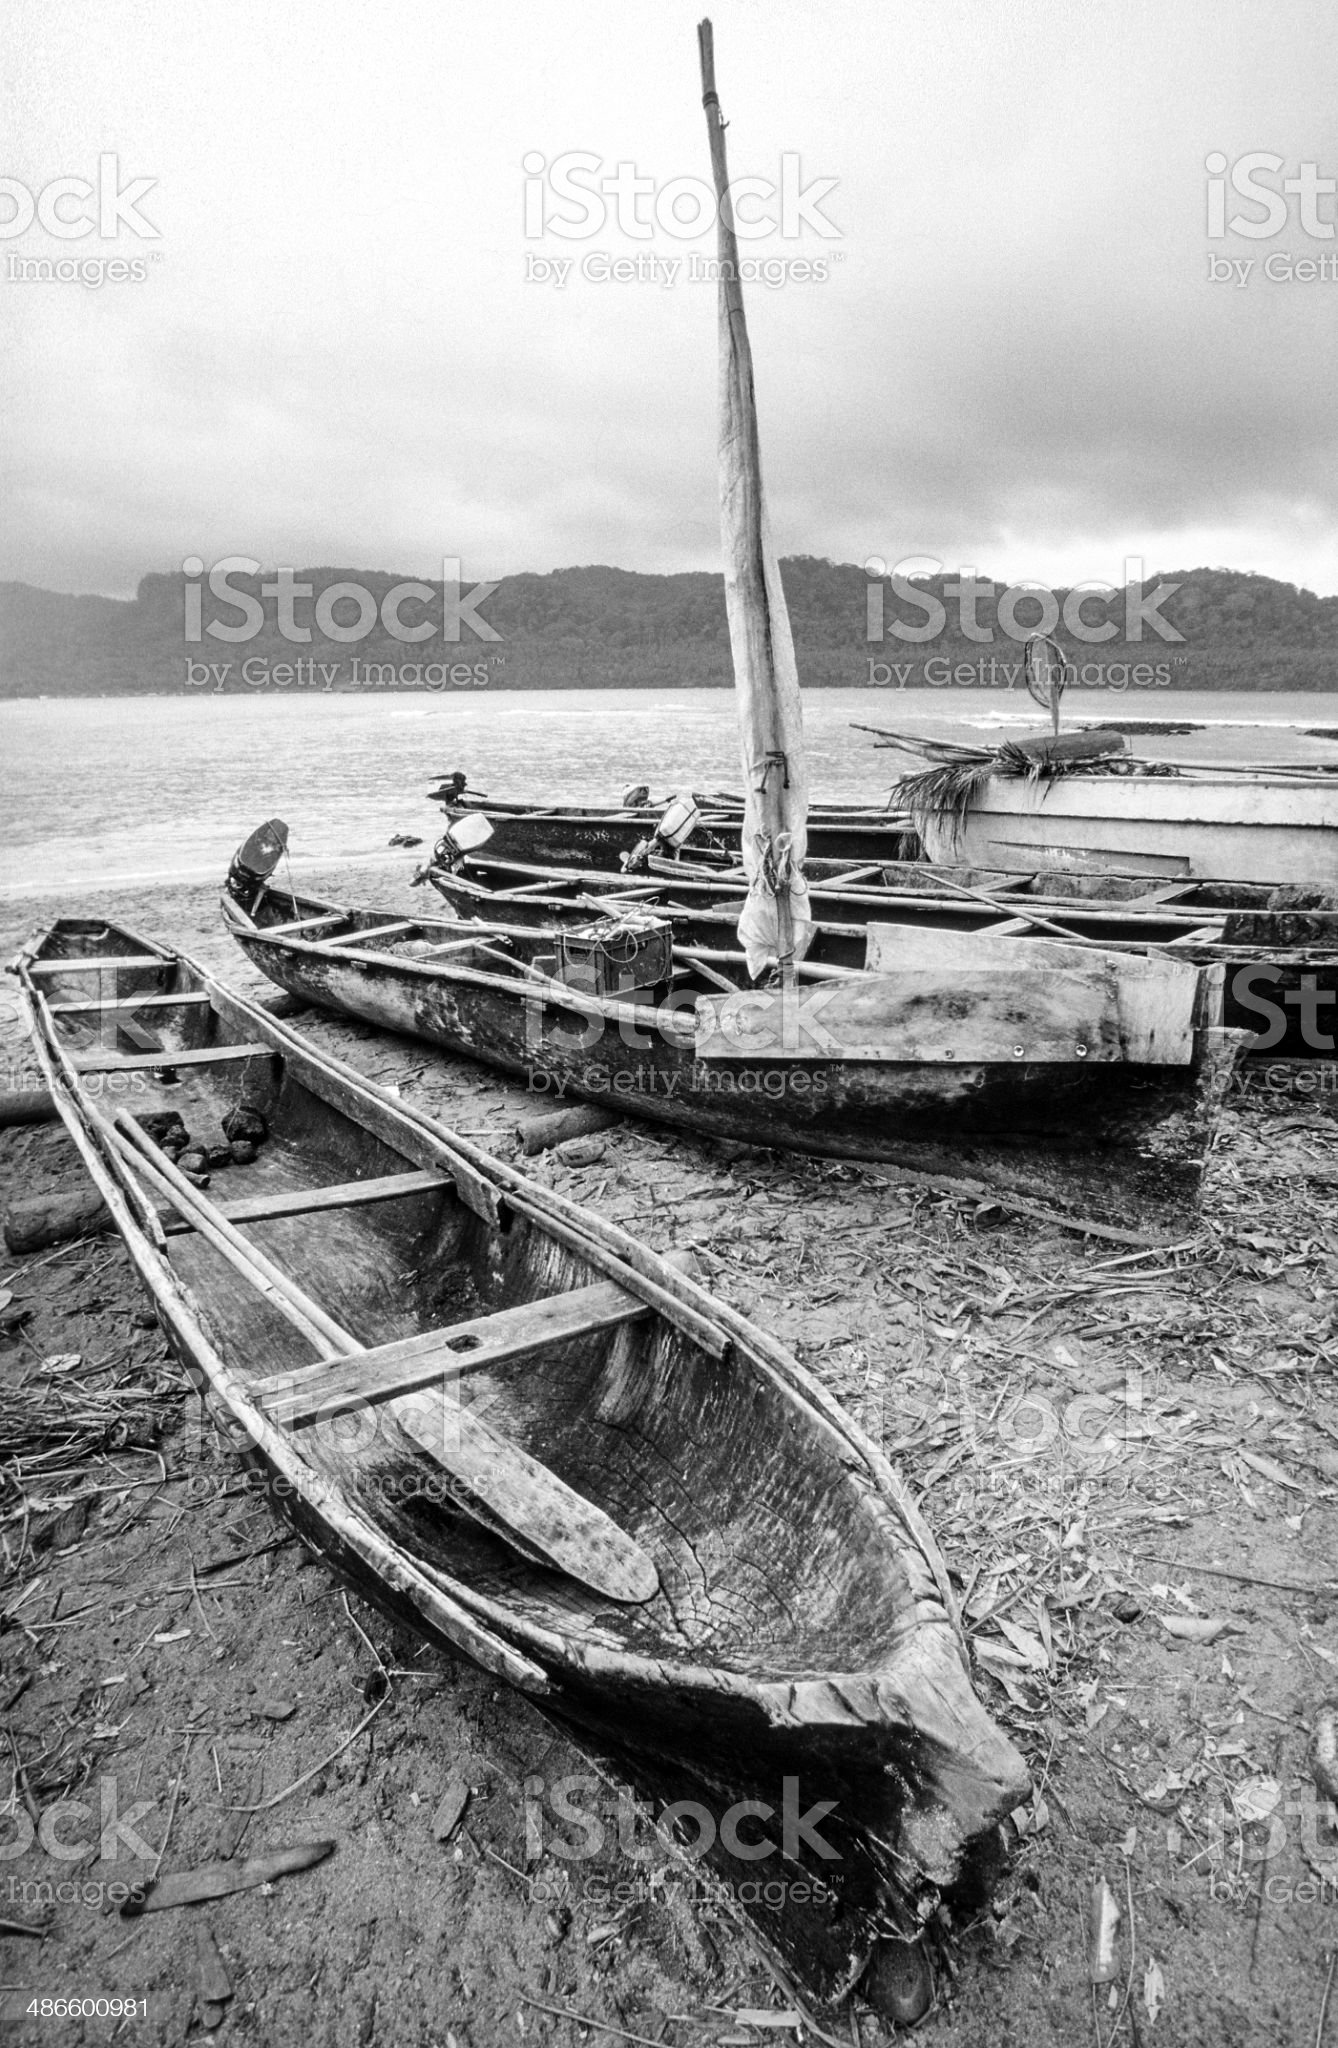 S?o Tom? and Princip?, S?o Tom?, fishing canoes. royalty-free stock photo